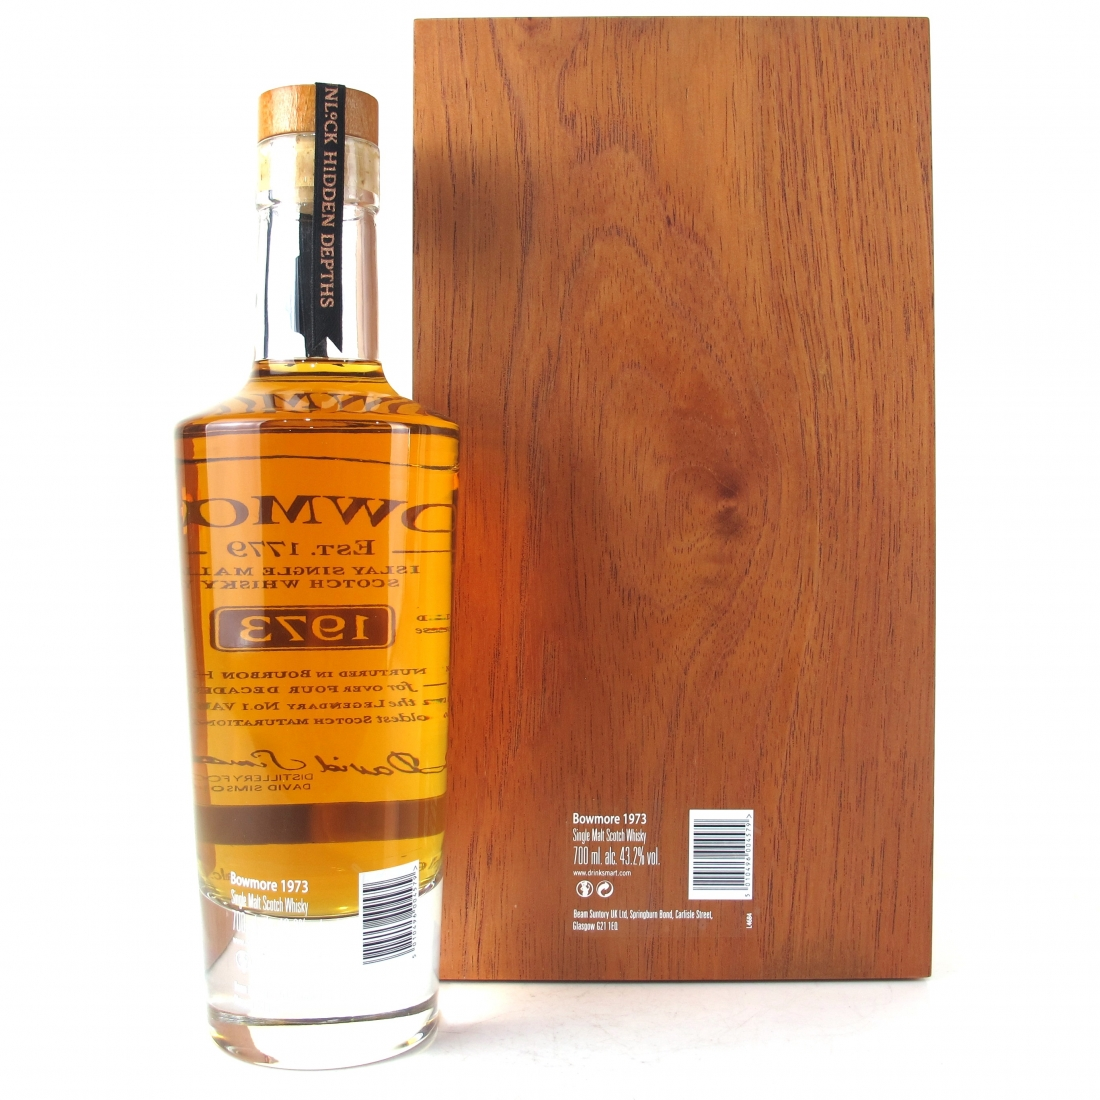 Bowmore 1973 43 Year Old